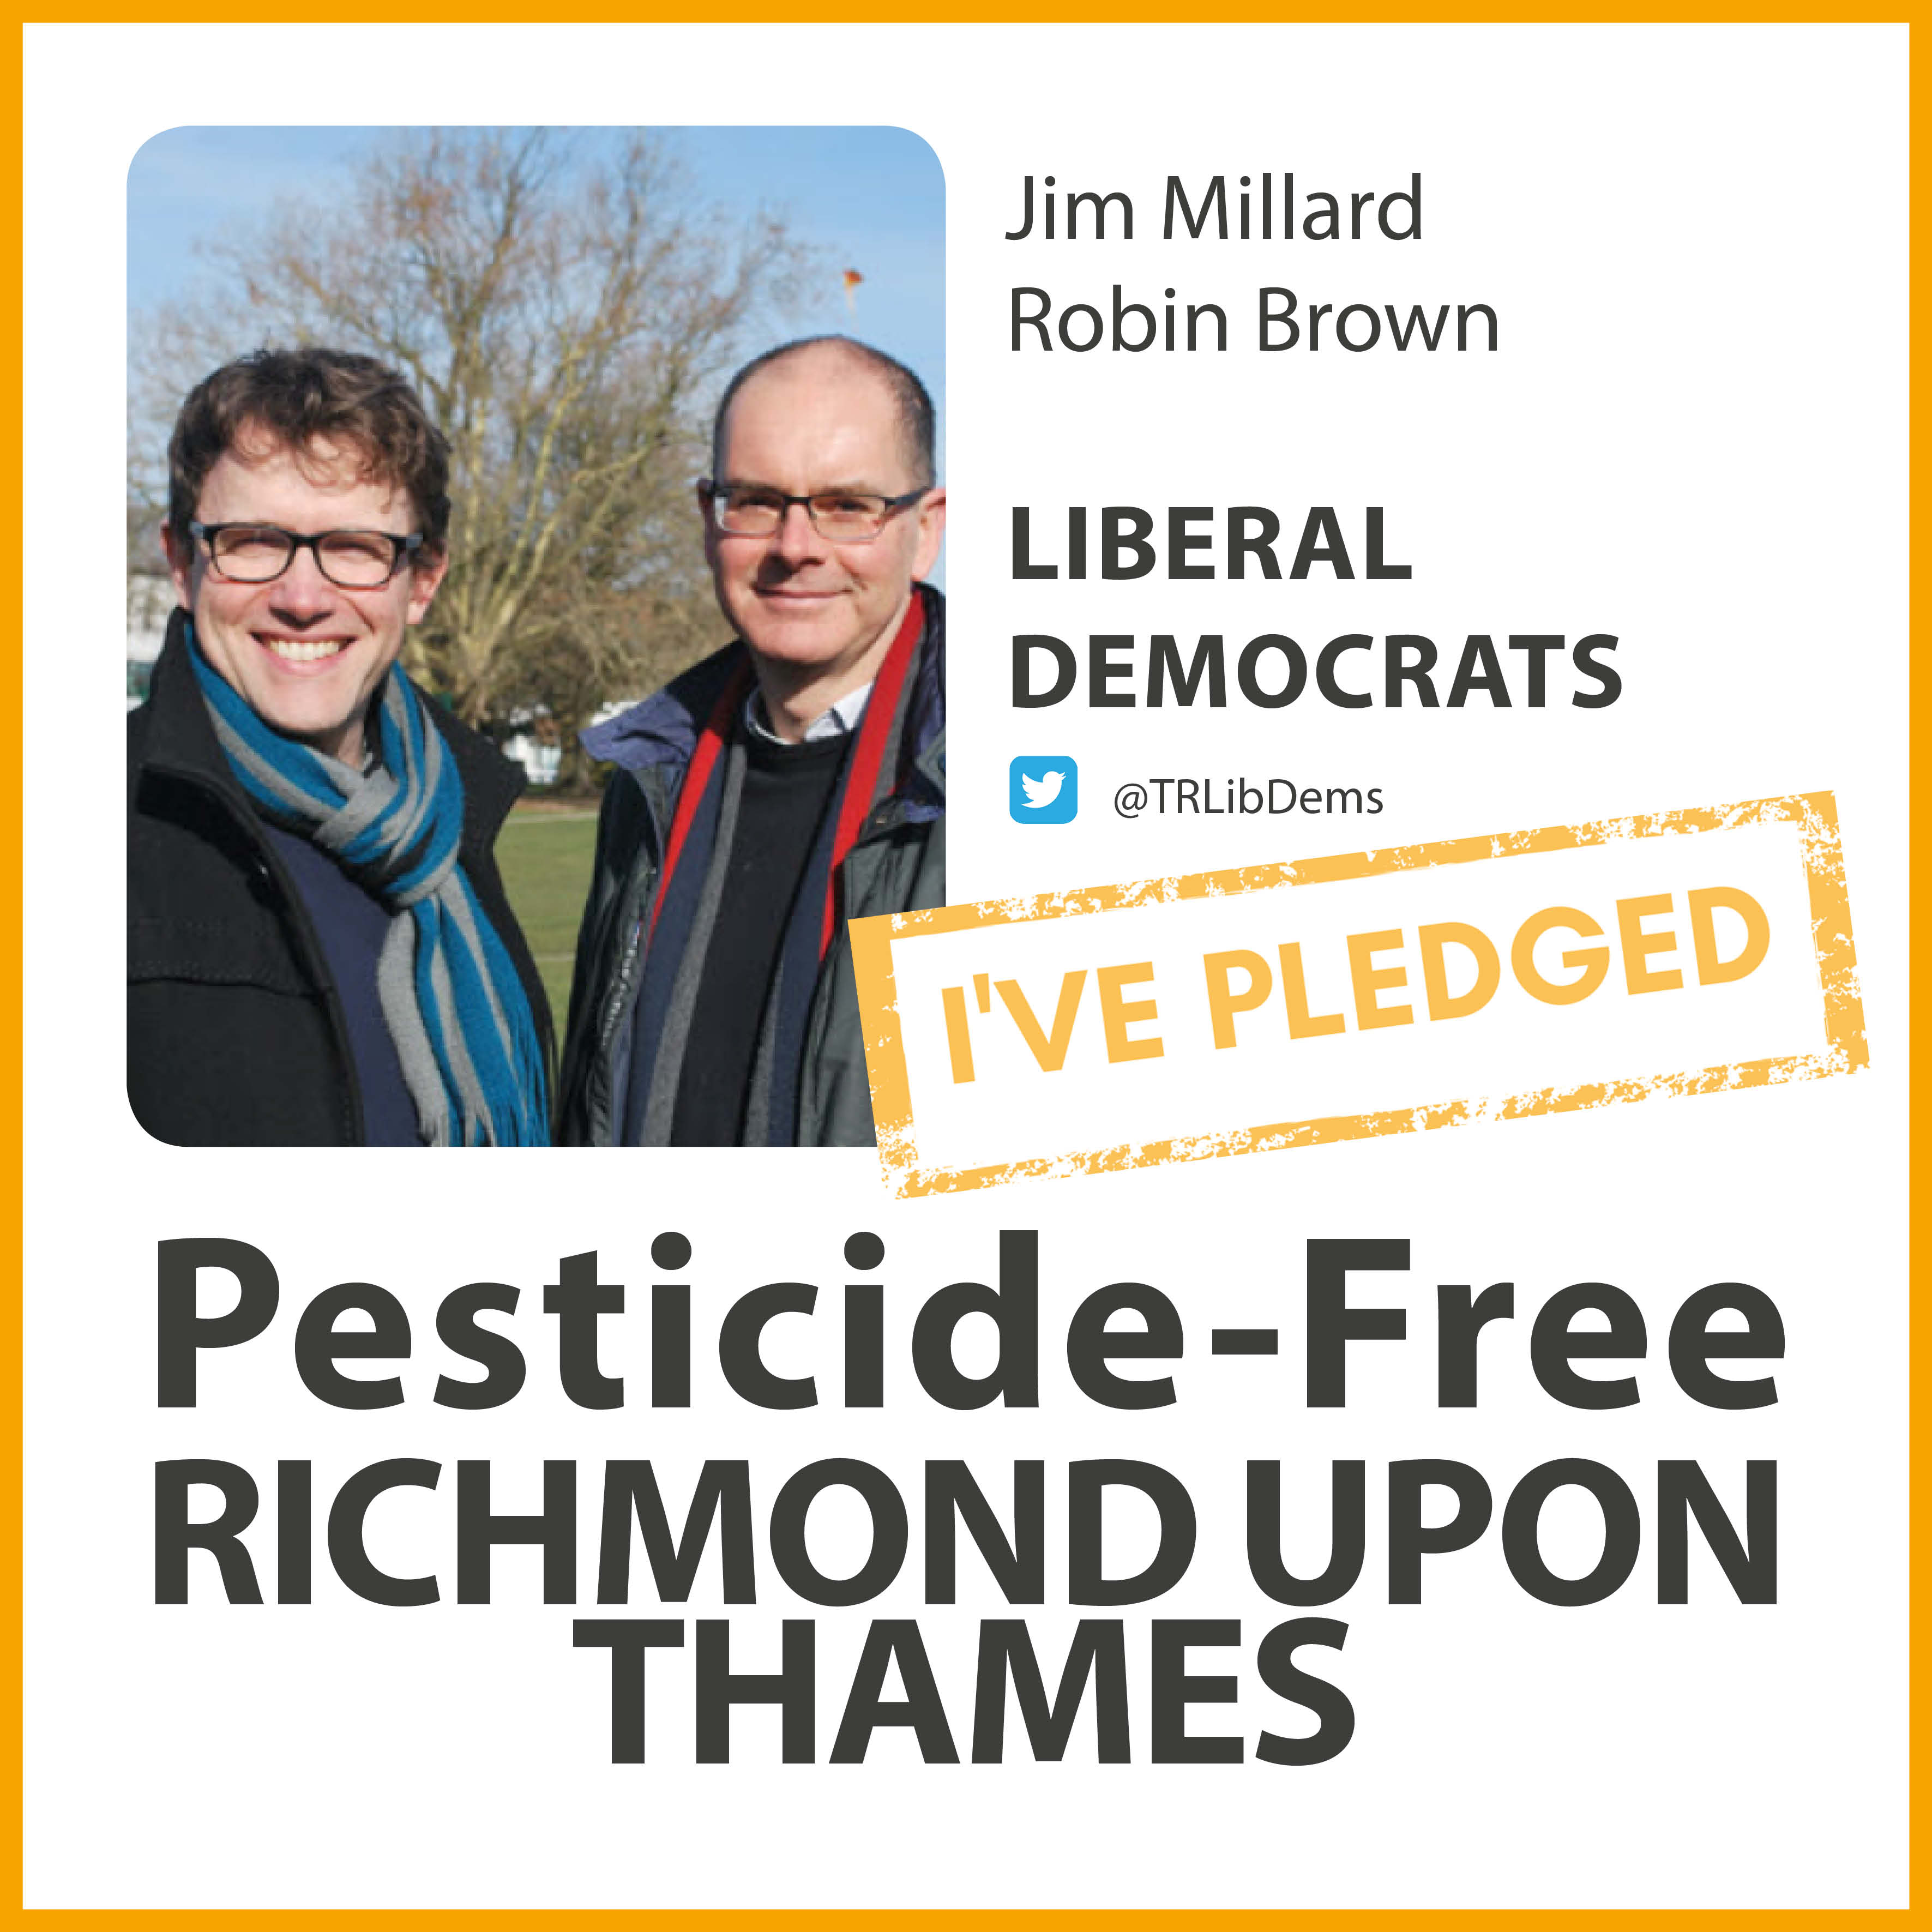 Hampton Wick Lib Dems have taken the pesticide-free pledge